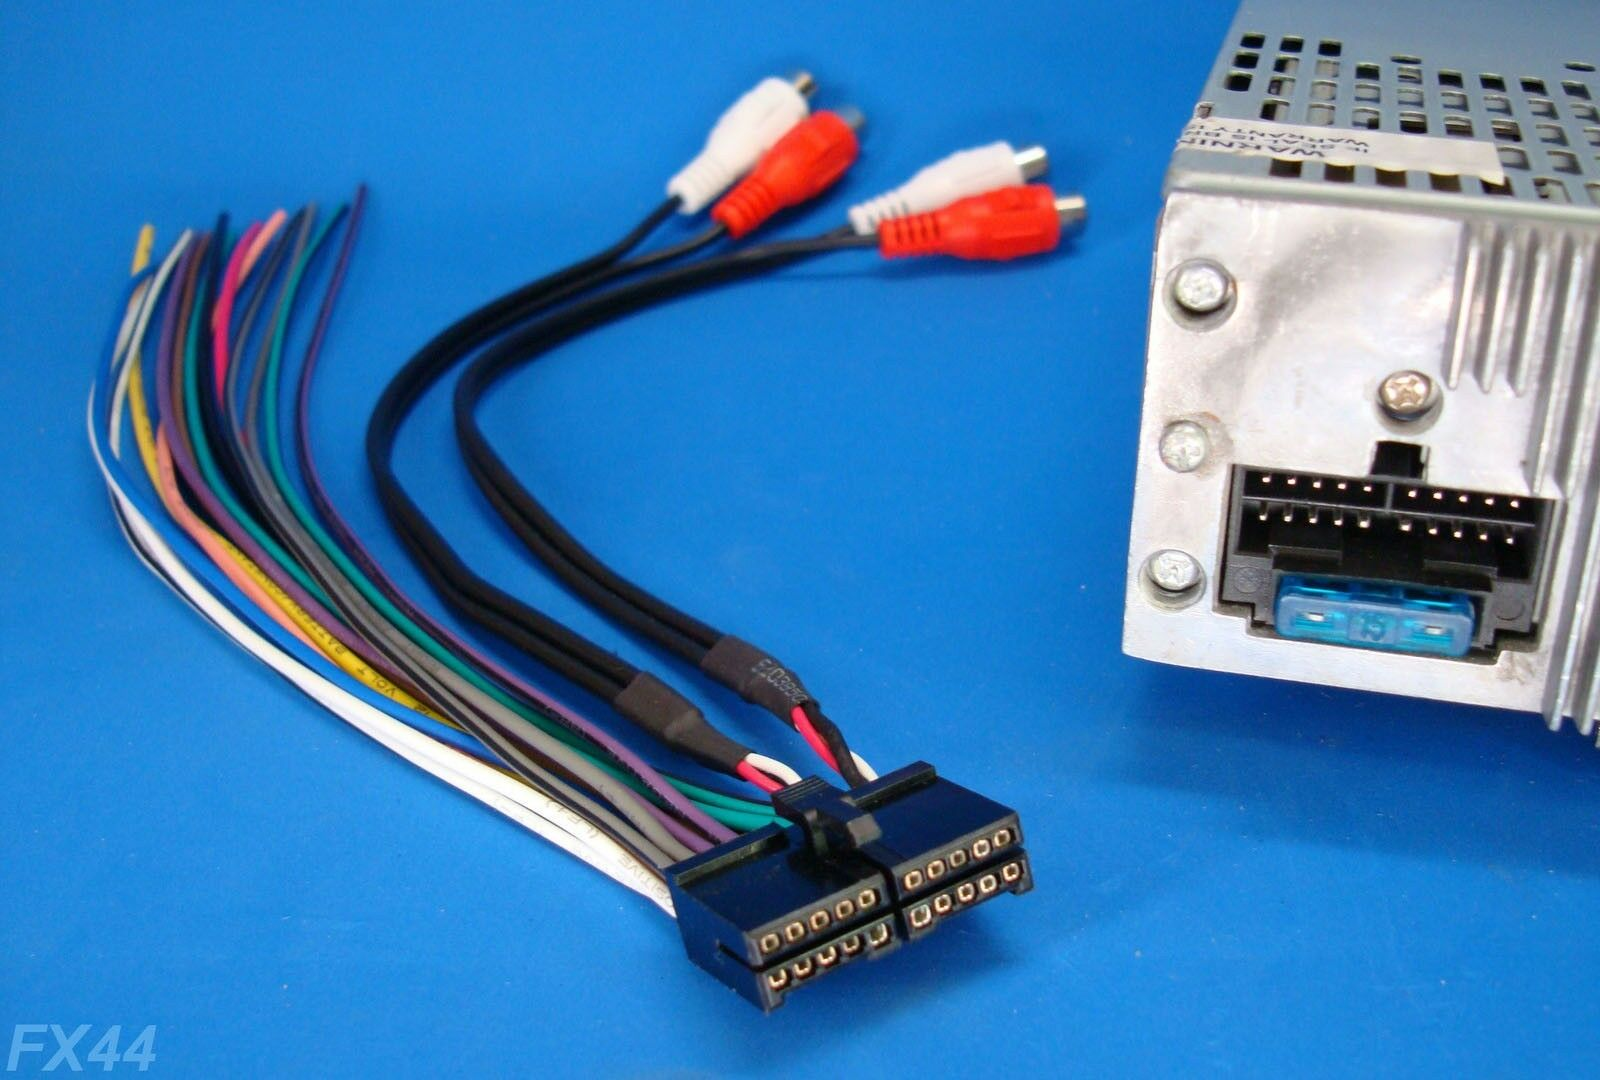 s l1600 xo vision 20 pin radio wire harness stereo power plug back clip Dual Car Stereo Wire Harness at gsmx.co